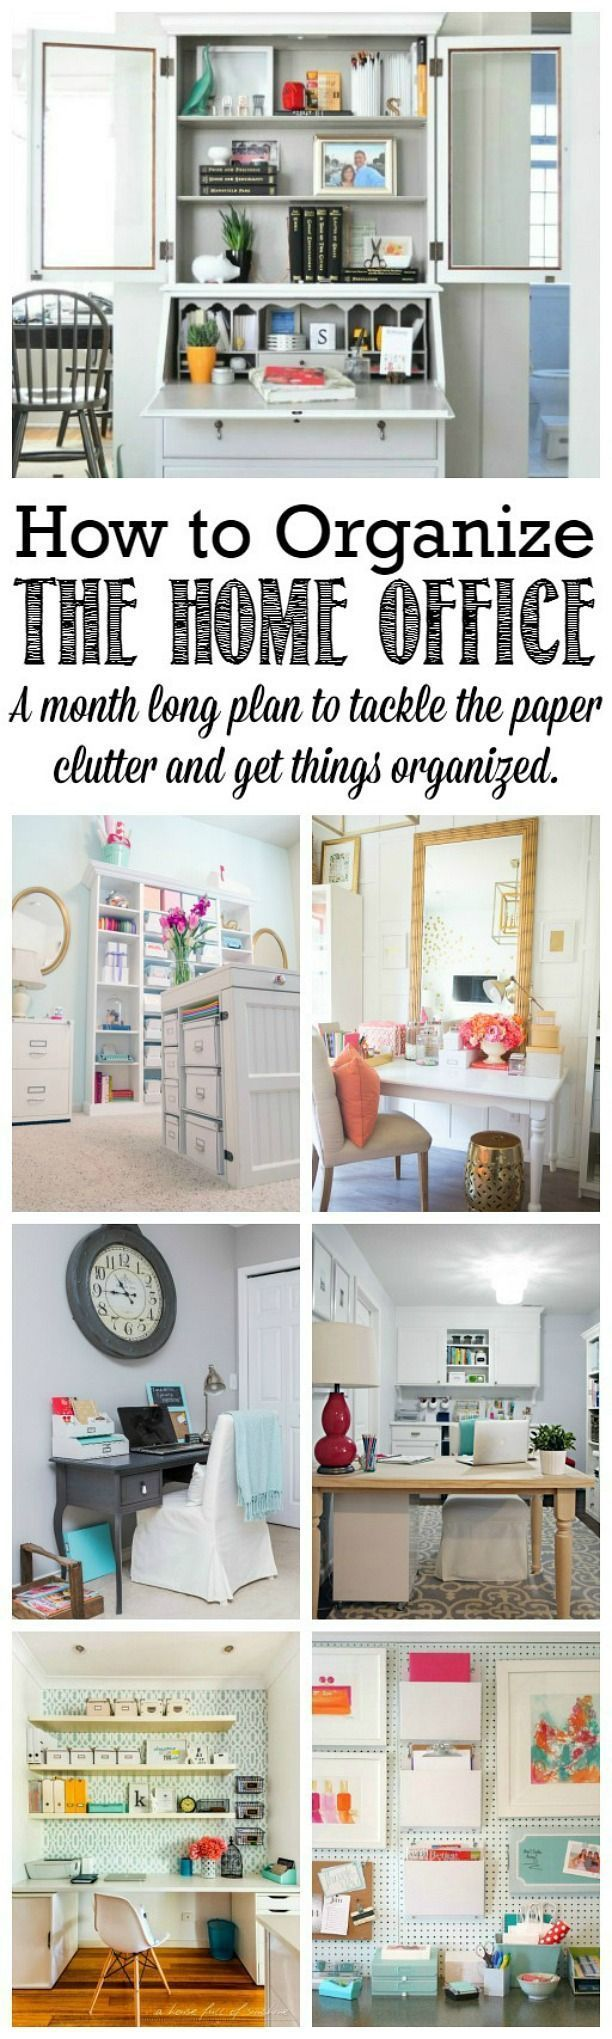 Home Office Organization {April HOD | Pinterest | Office ...